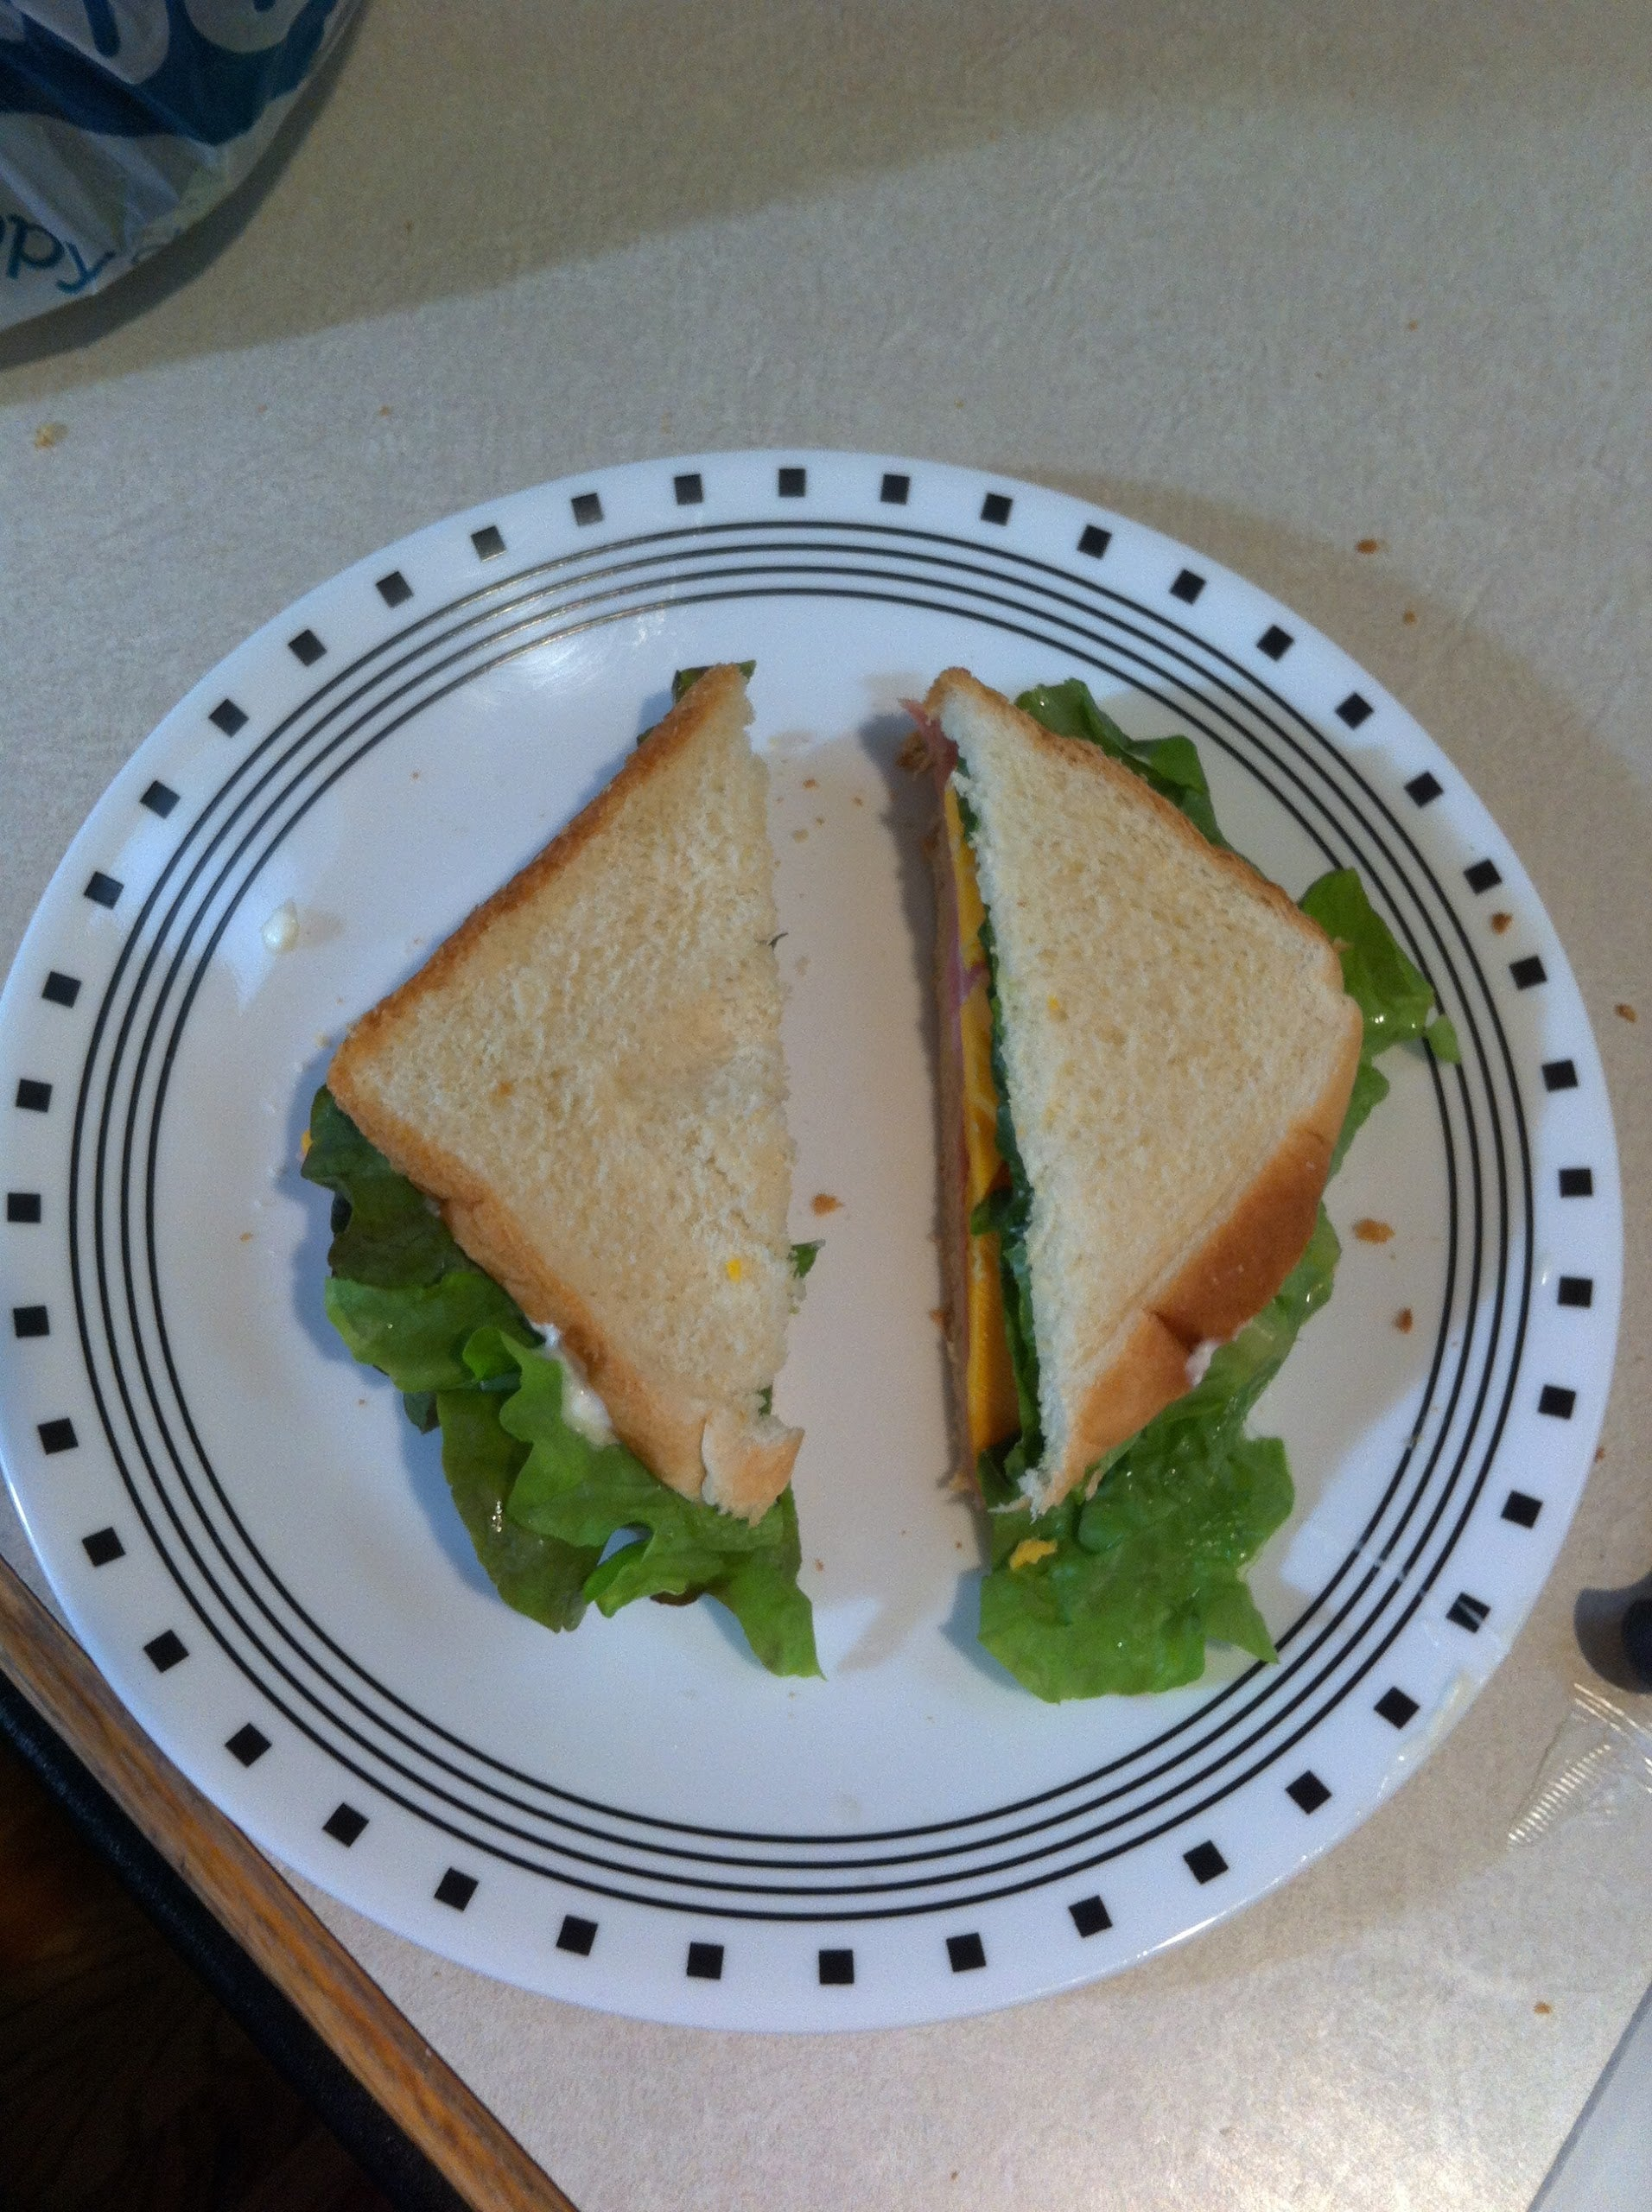 How To Make A Perfect Sandwich 10 Steps Instructables